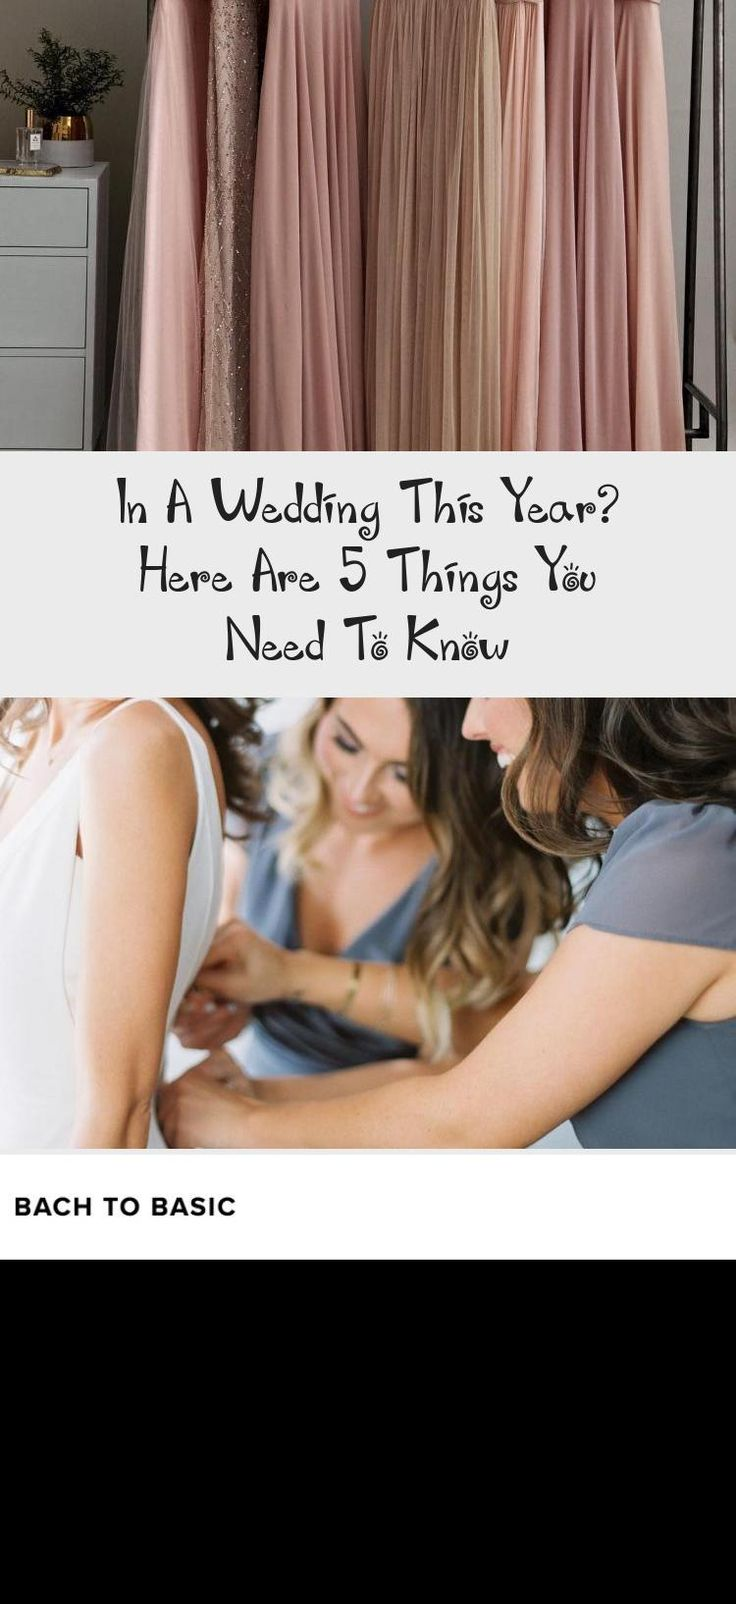 In a Wedding This Year? Here Are 5 Things You Need to Know | The Everygirl #BridesmaidDresses2019 #BridesmaidDressesSpring #BlackBridesmaidDresses #BridesmaidDressesBeach #BridesmaidDressesColors